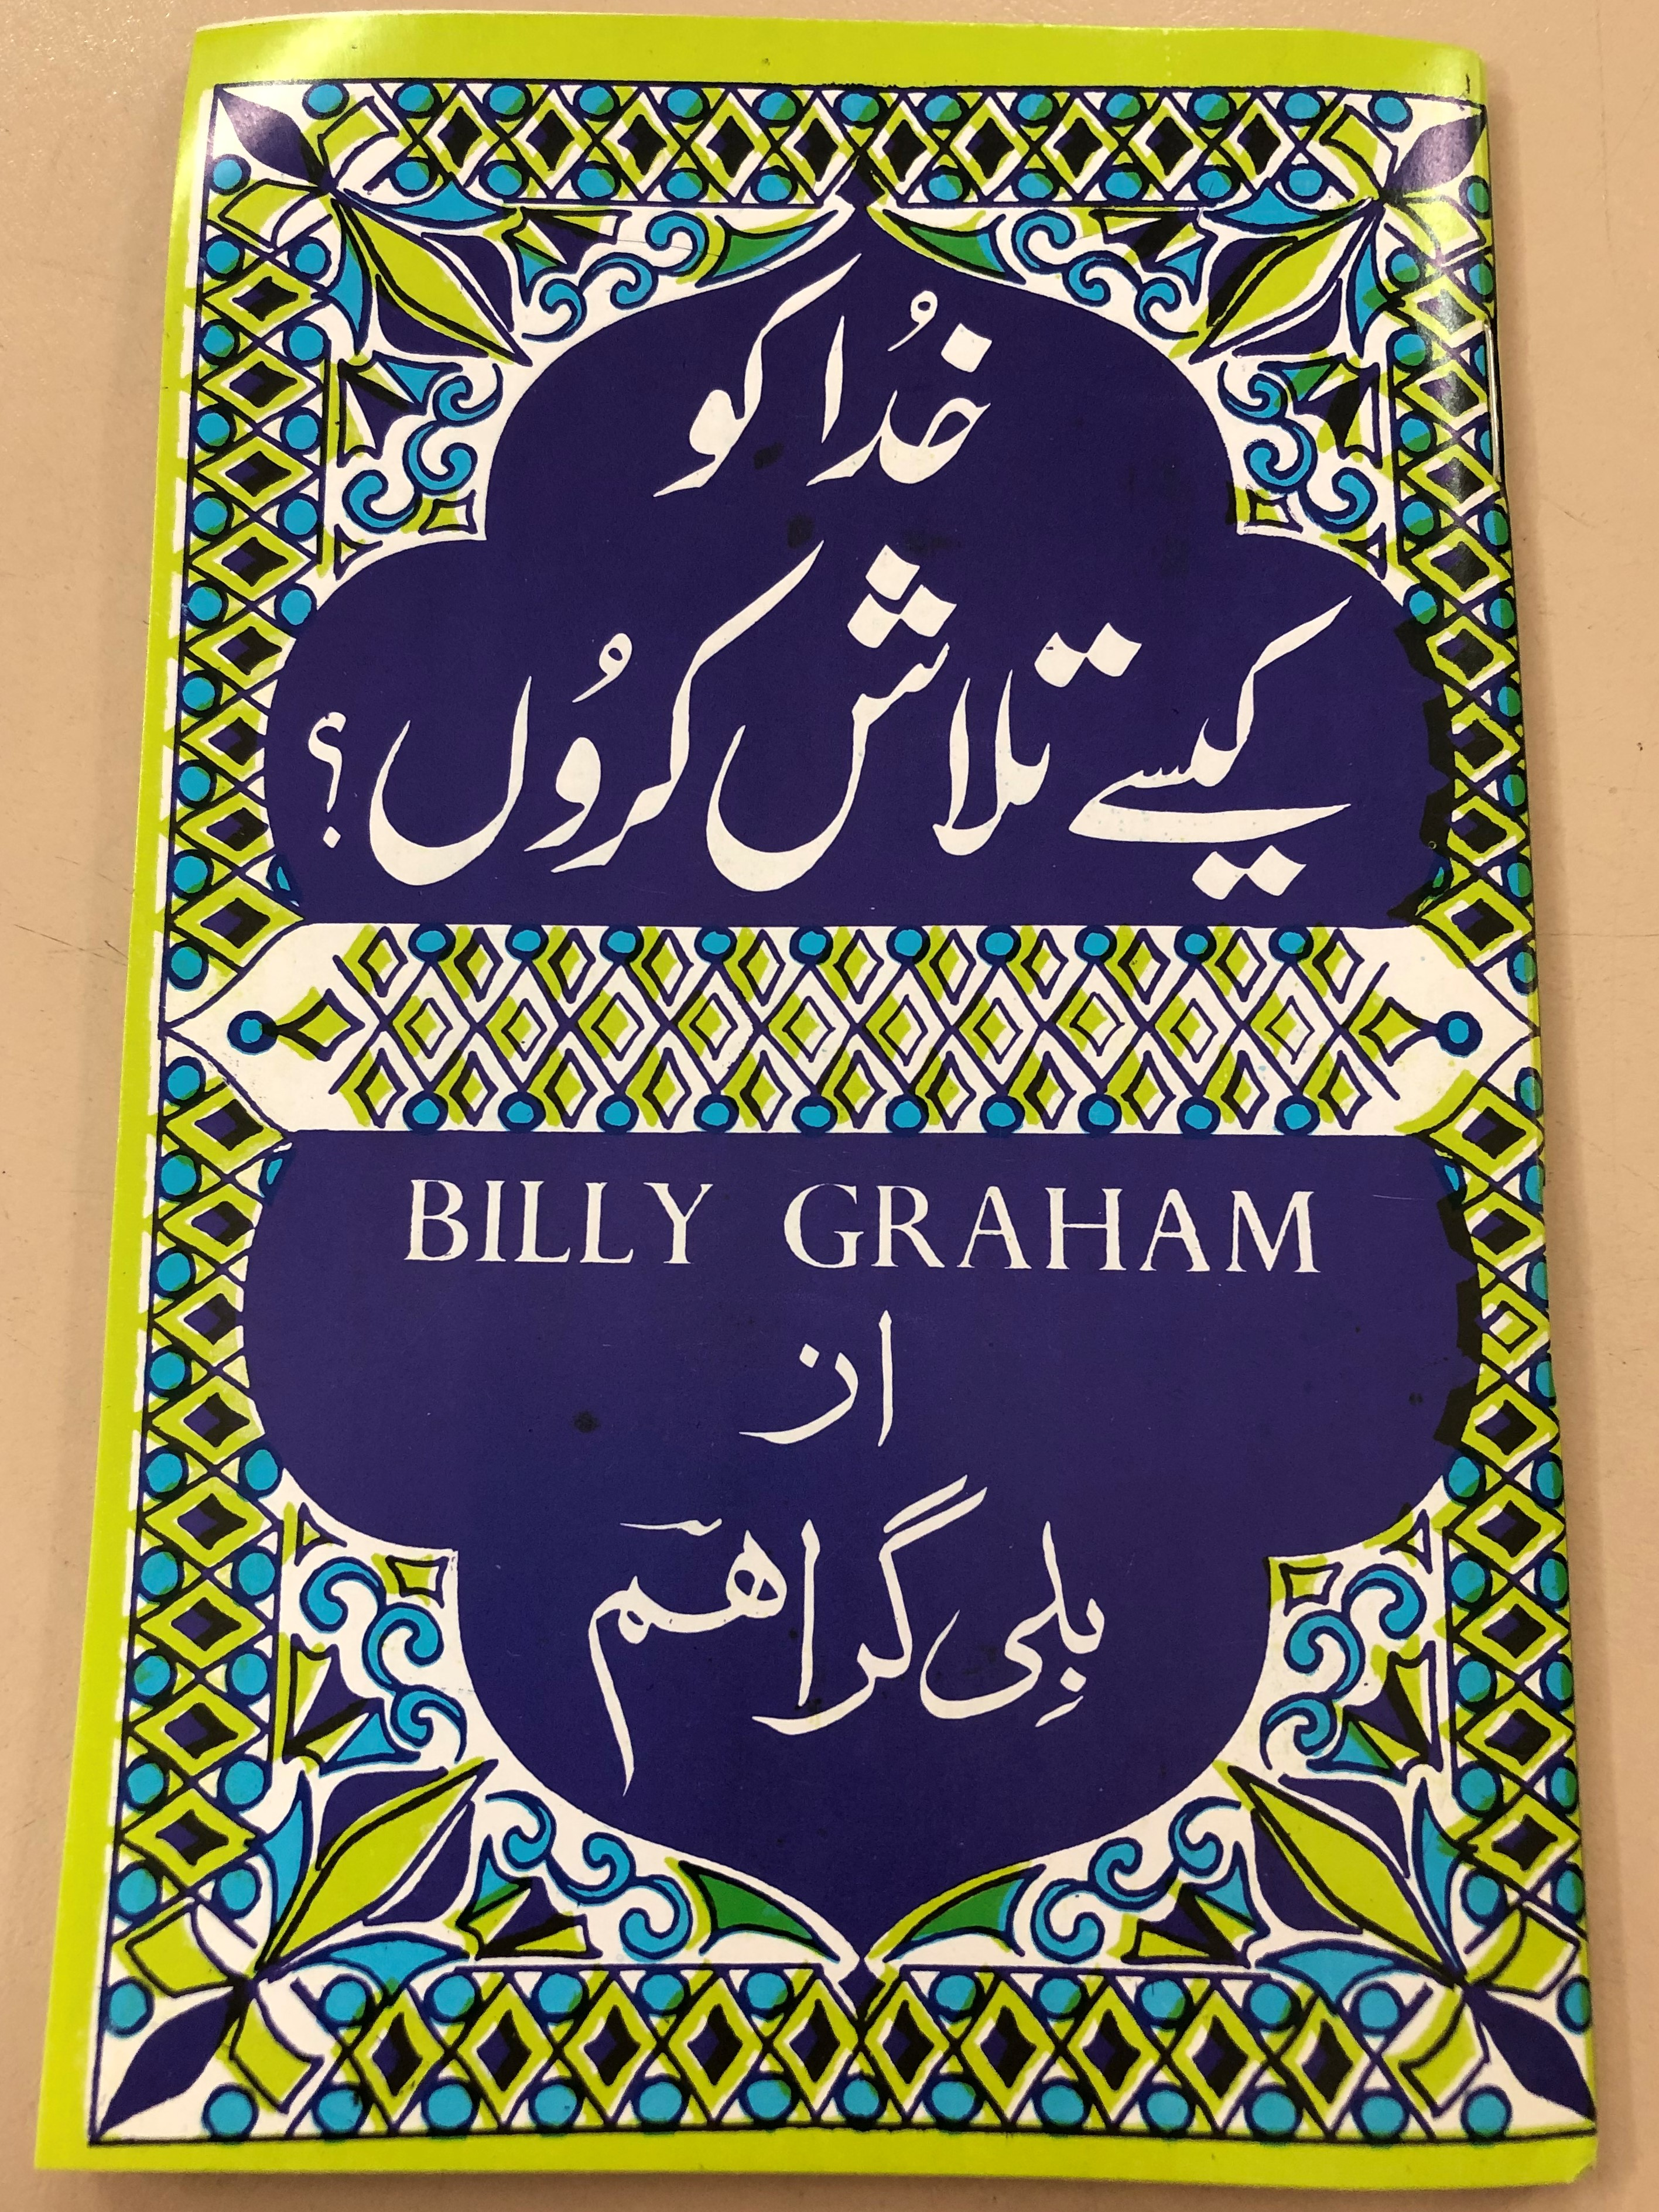 six-chapters-from-peace-with-god-by-billy-graham-in-urdu-1-.jpg